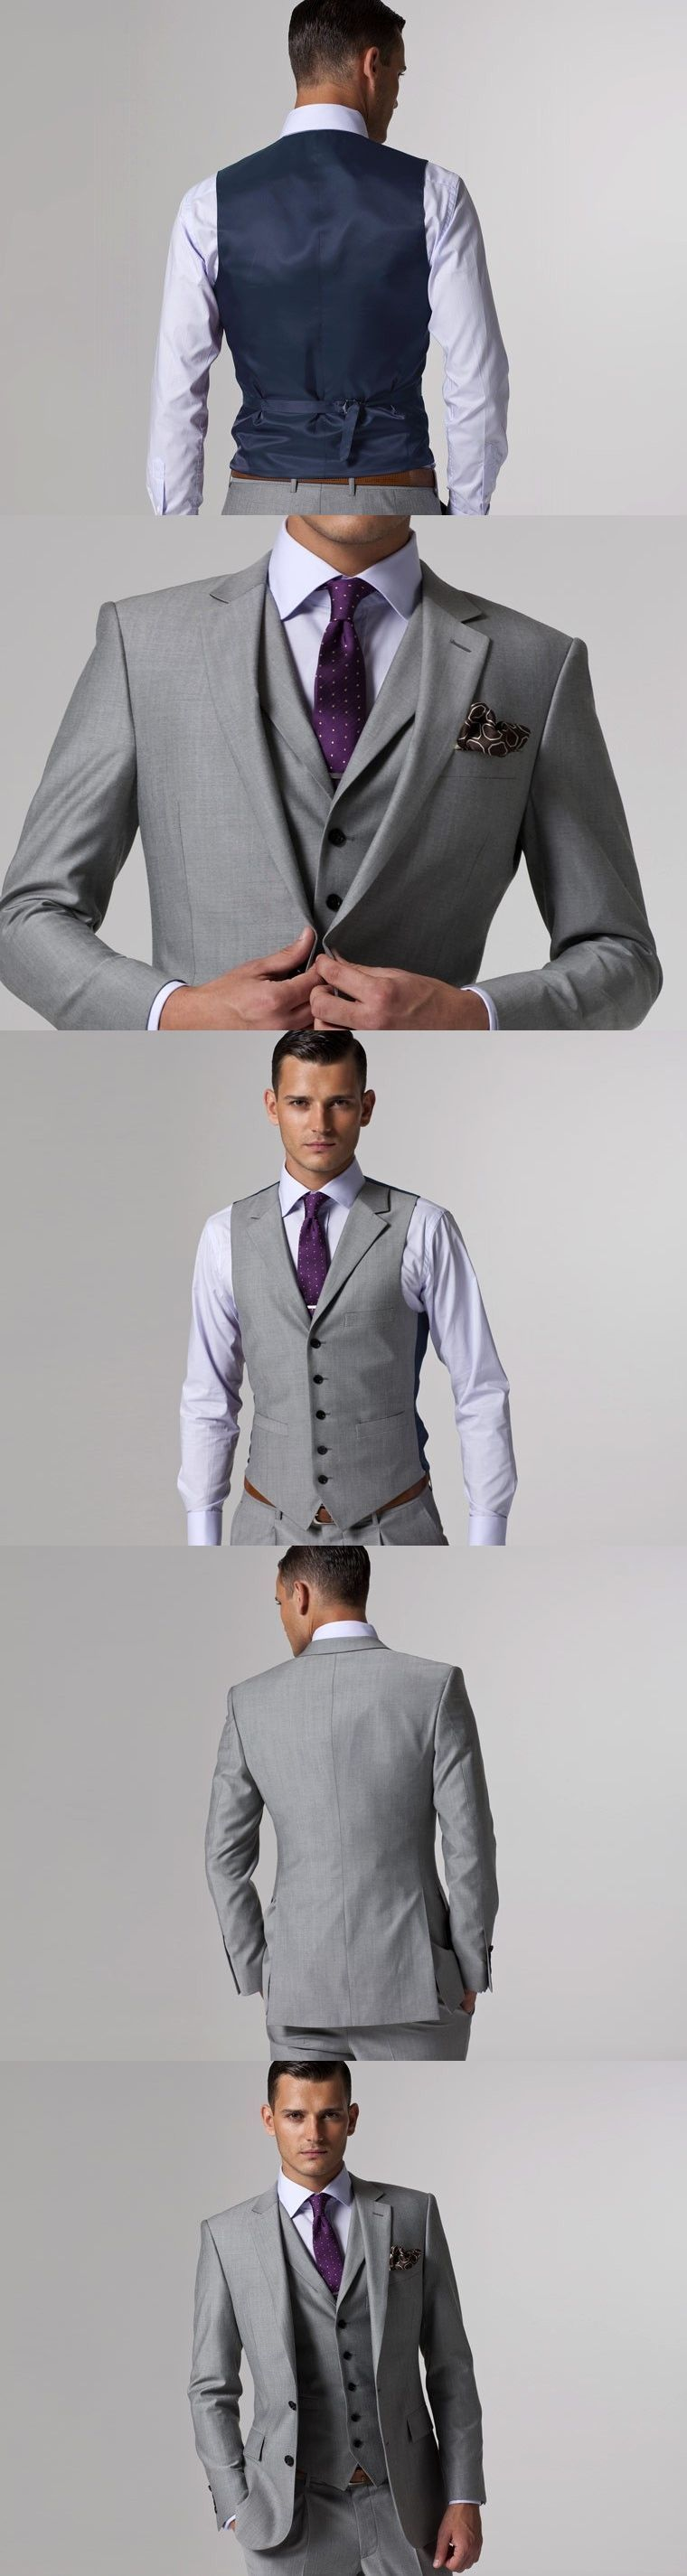 Gray wedding tuxedo custom made suits groom suit mens gray tuxedo